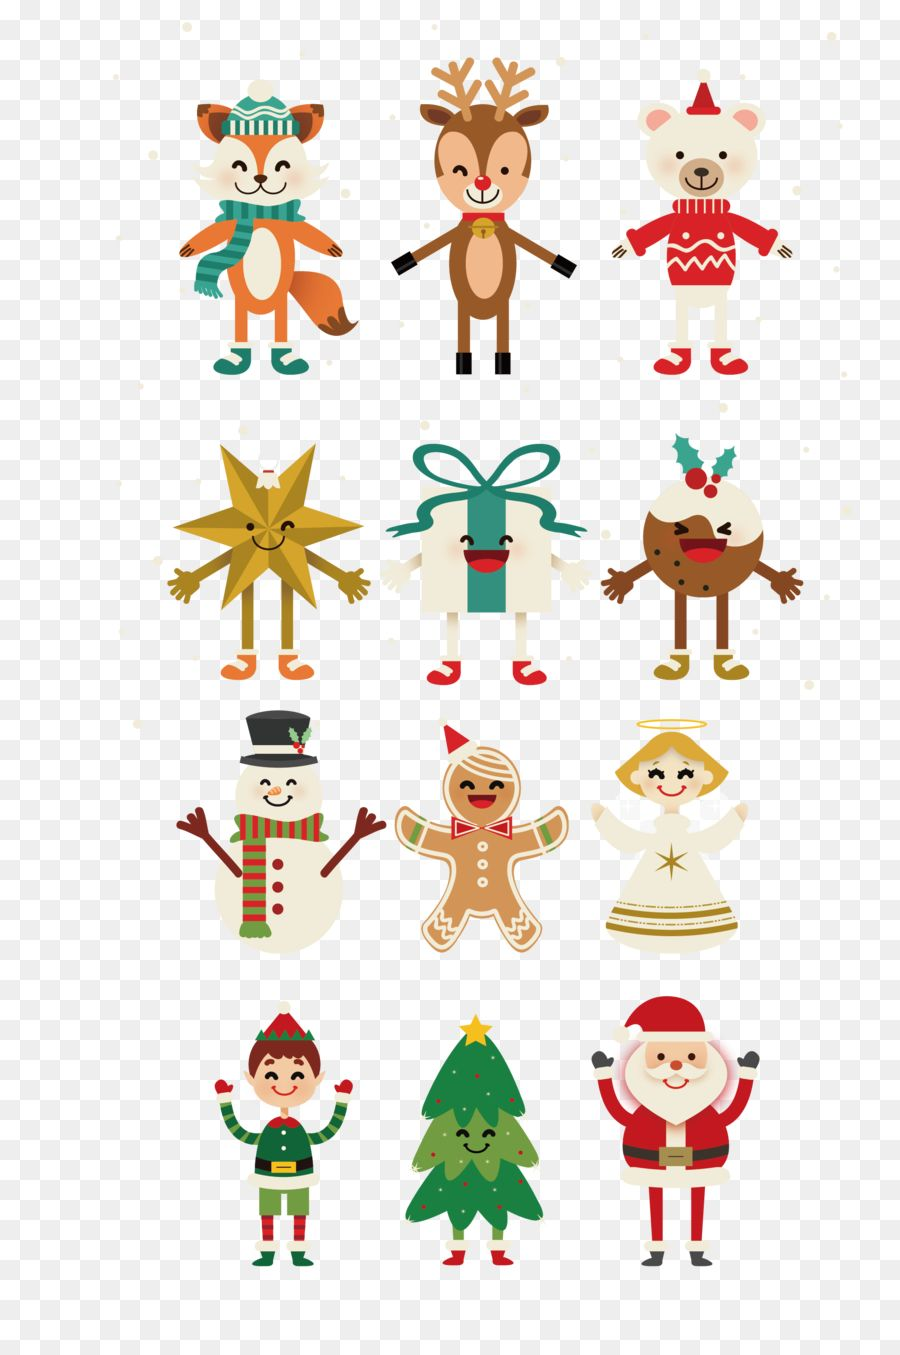 Free Download Christmas elements collection png image